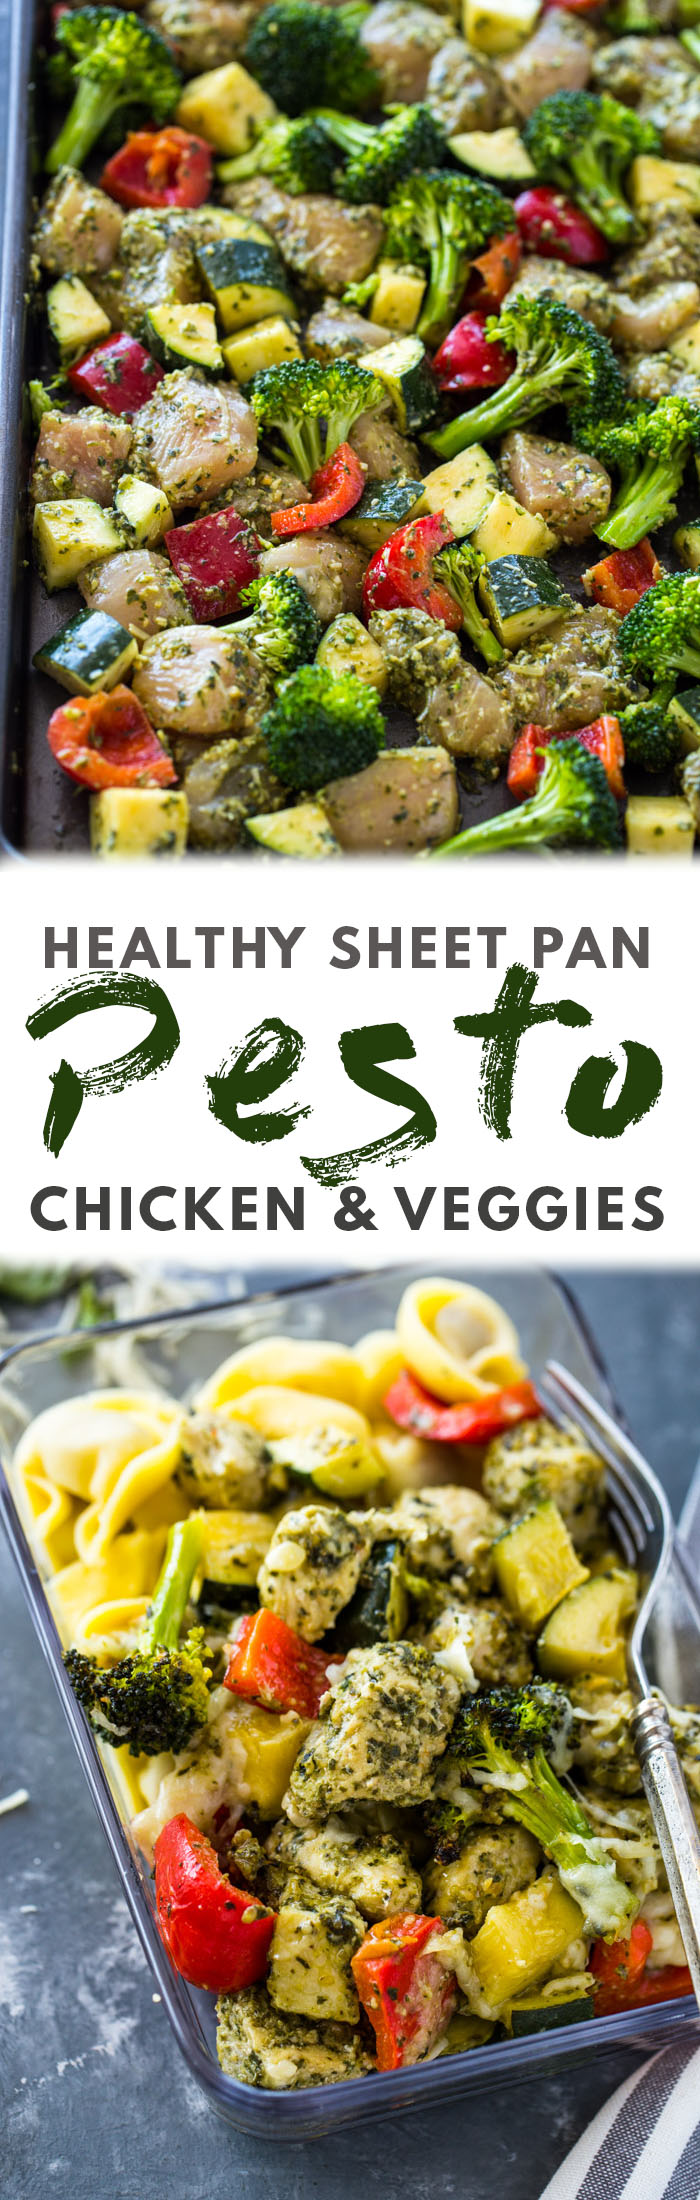 Healthy Pesto Chicken and Veggies (20 Minute Sheet Pan)